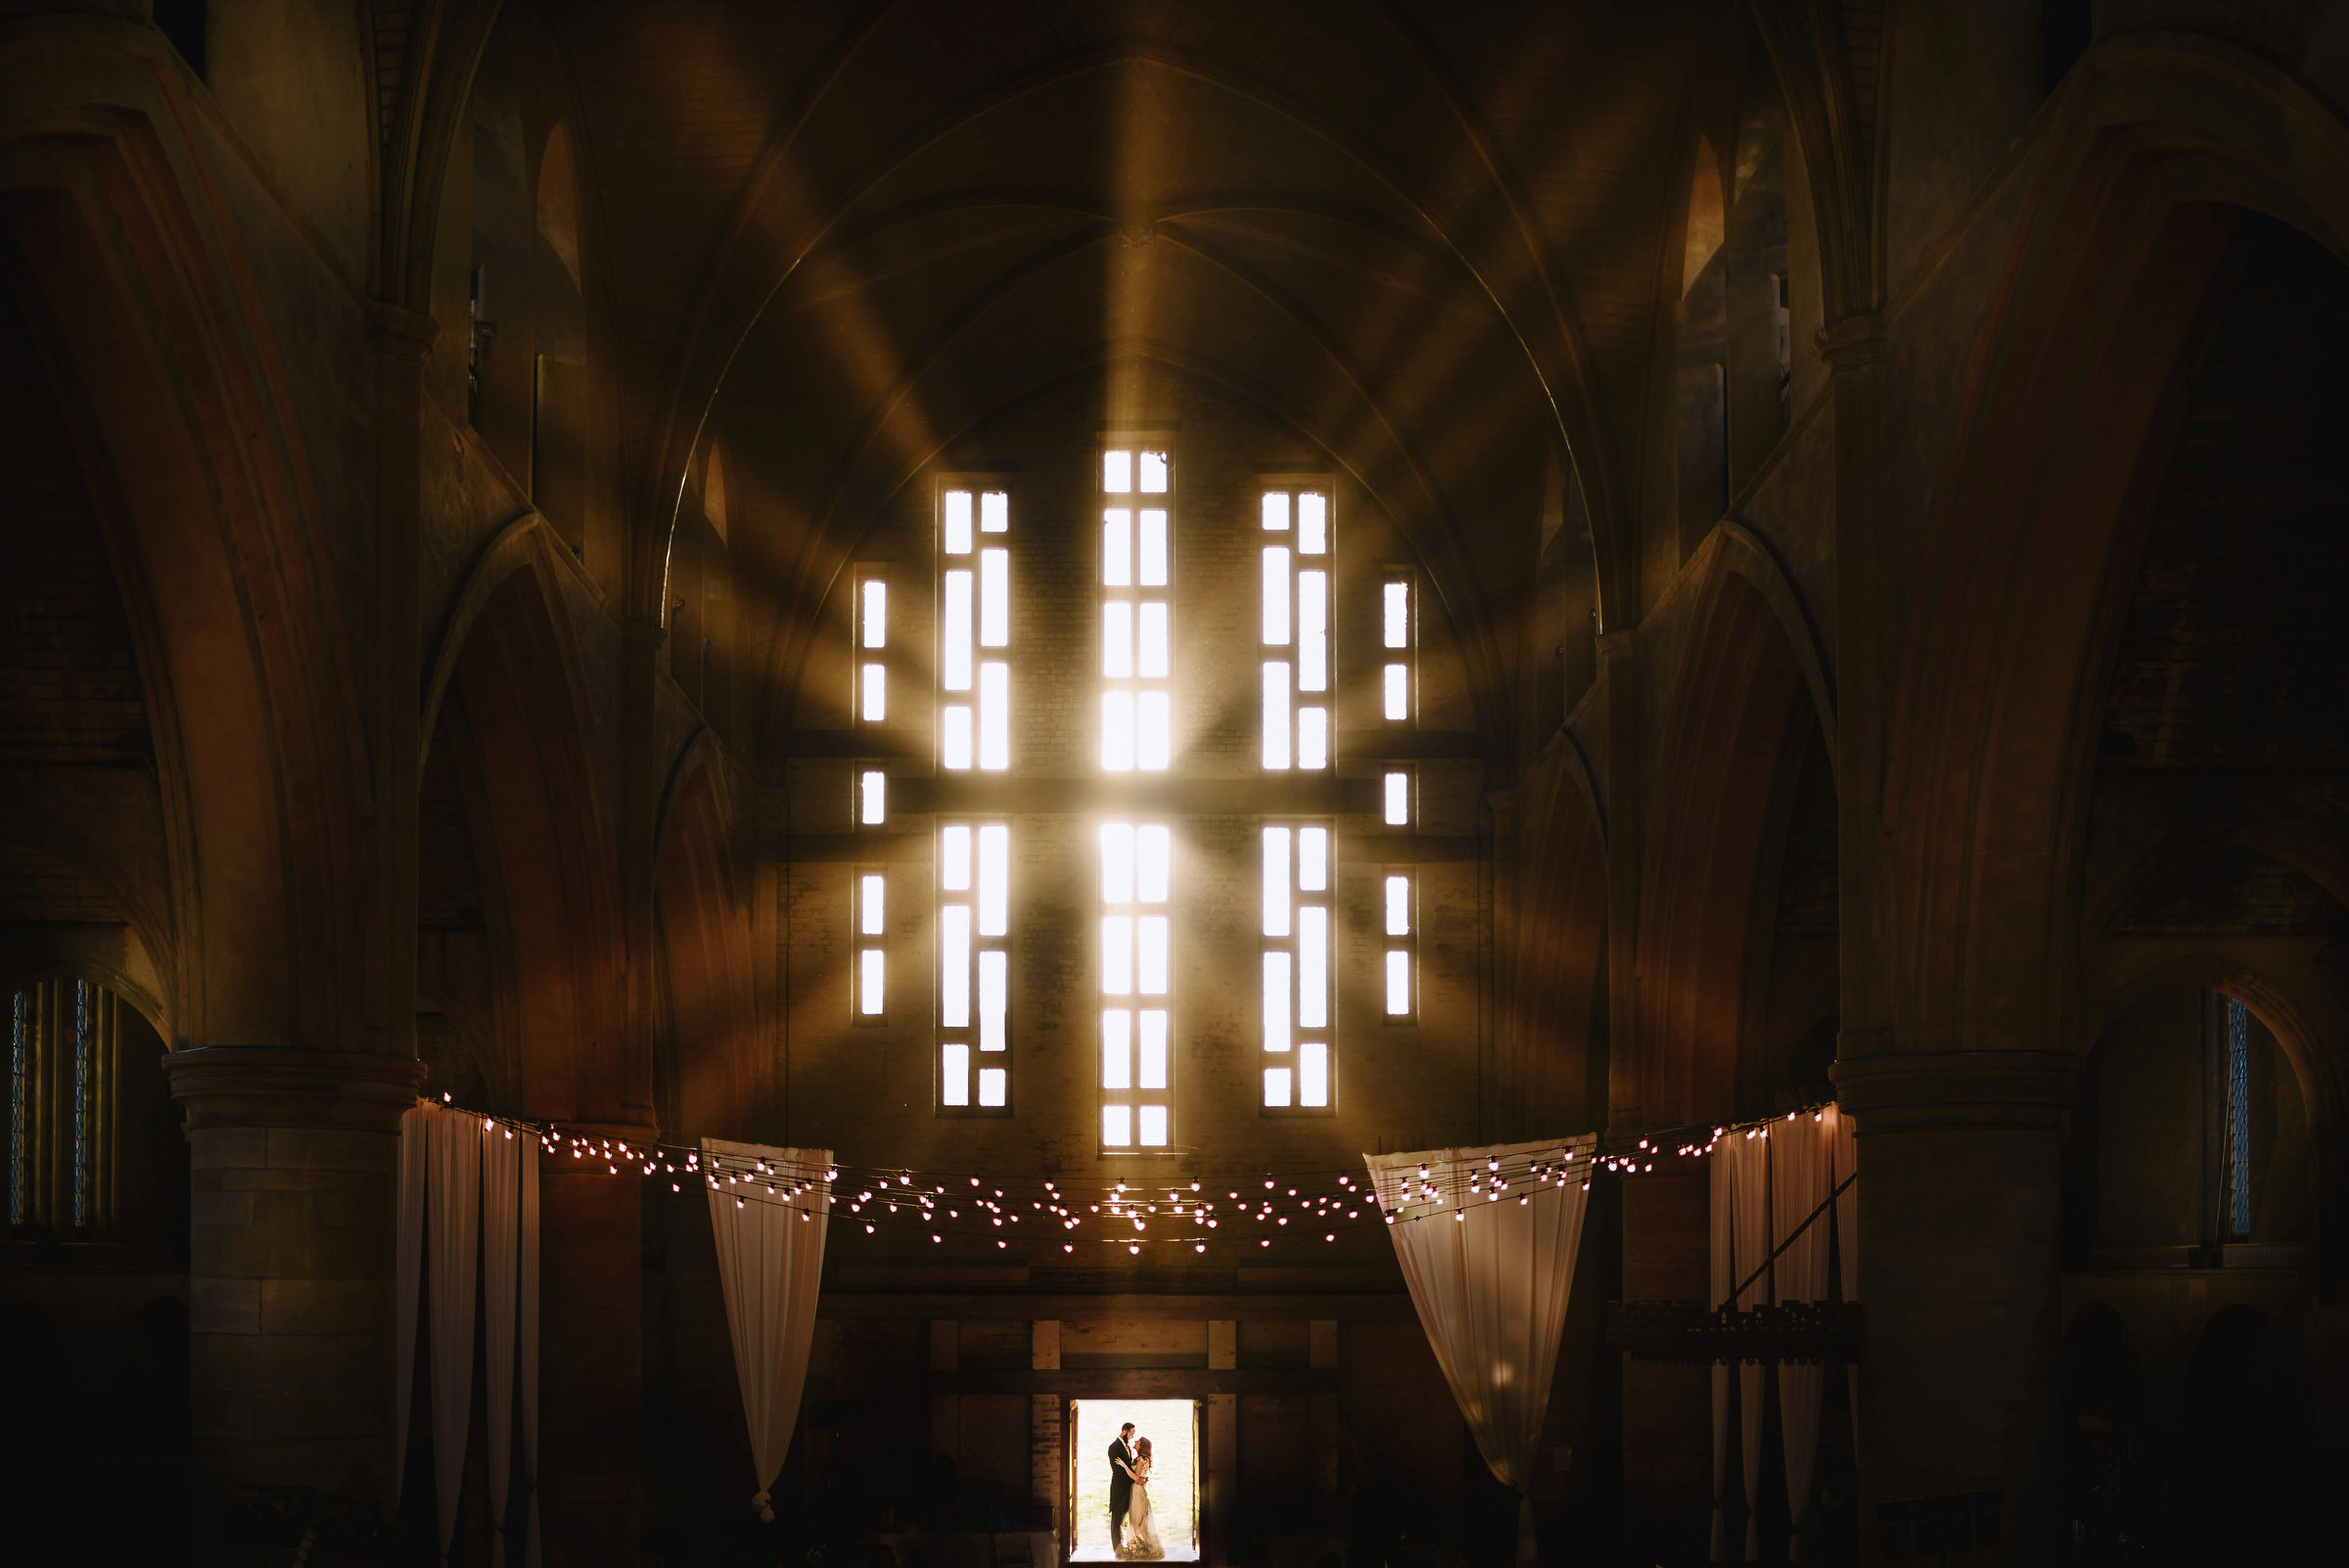 Couple portrait at church entrance with light rays coming in - photo by Andy Gaines Photography